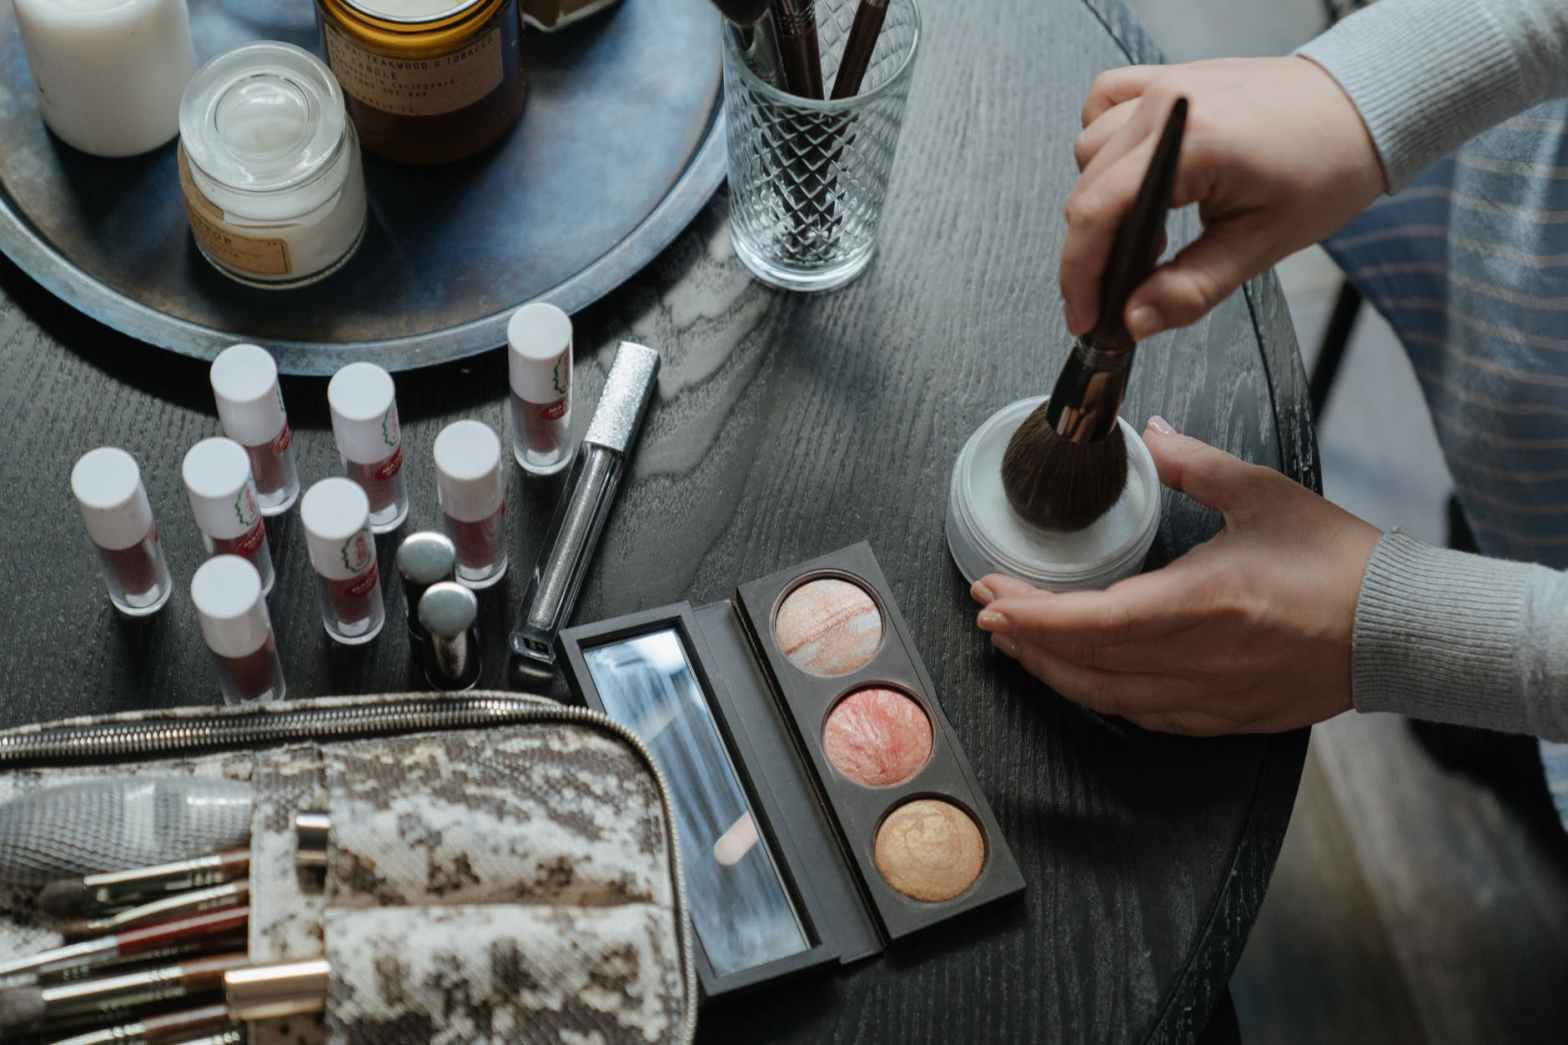 Palm Oil Free Makeup, Cosmetics and Perfume